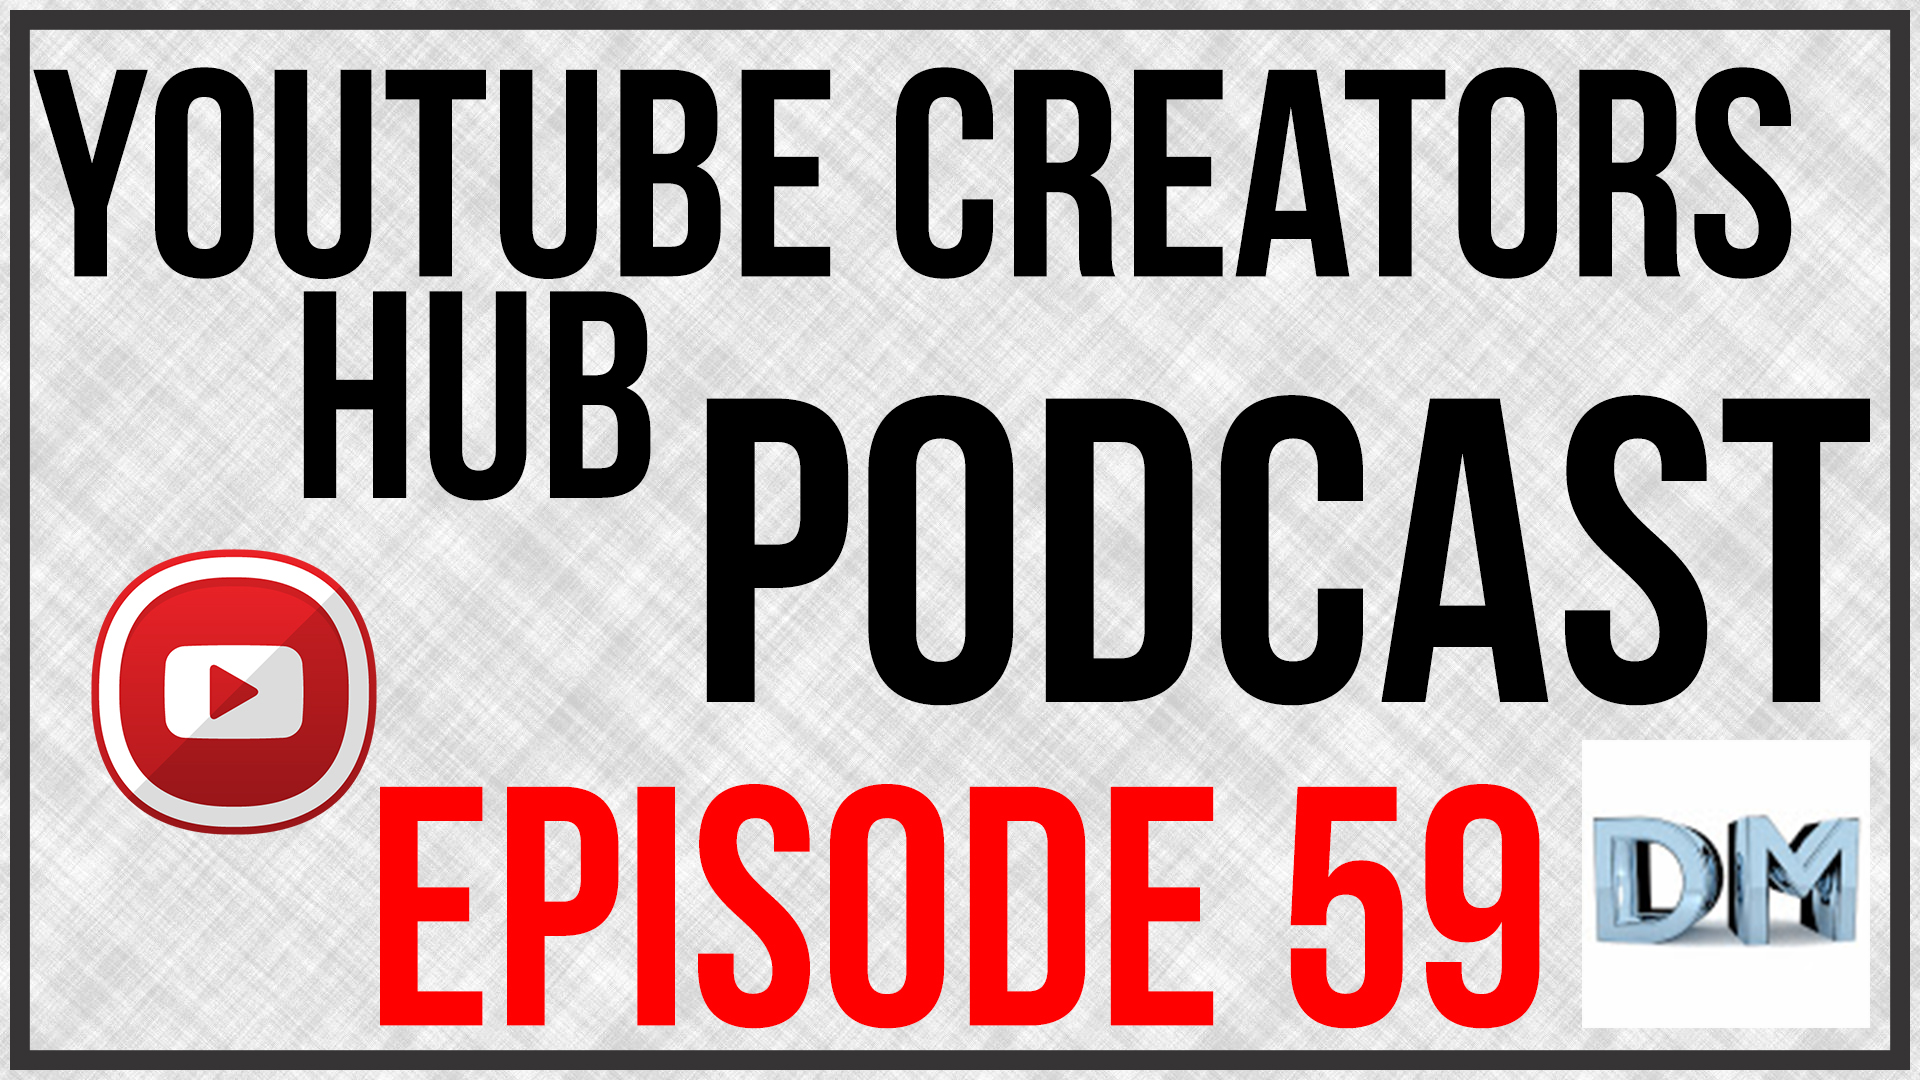 YouTube Creators Hub Episode 59